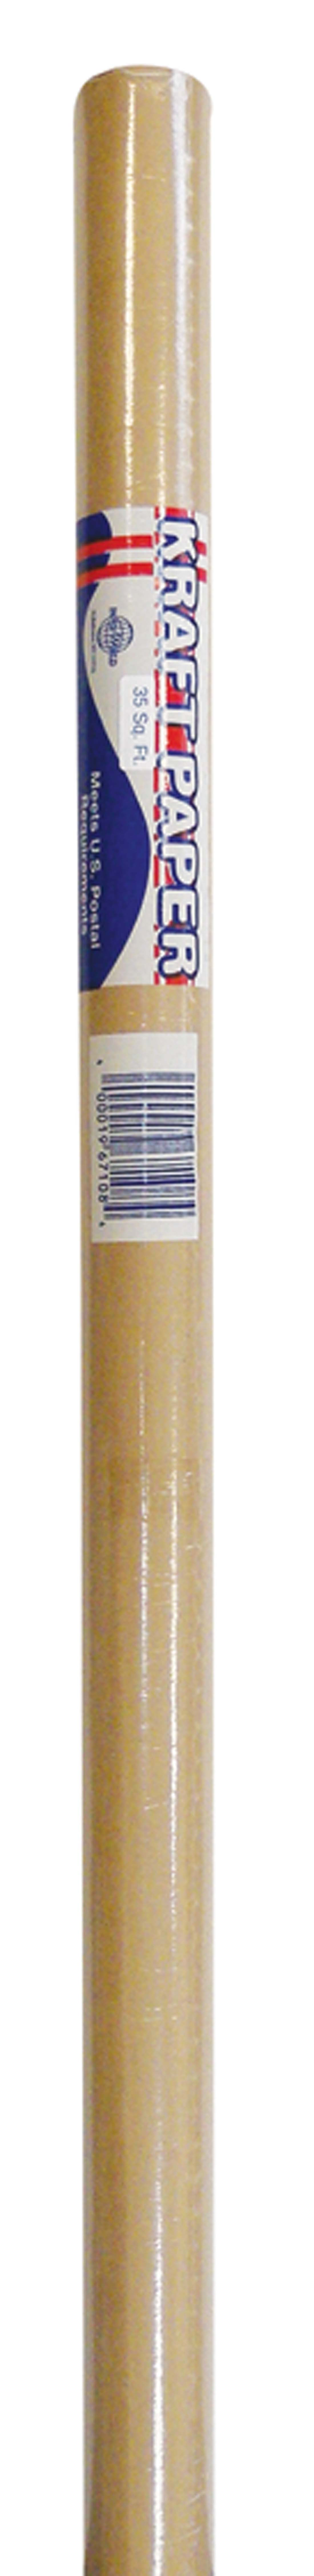 View BROWN KRAFT PAPER ROLL 35 SQUARE FEET (MADE IN USA)